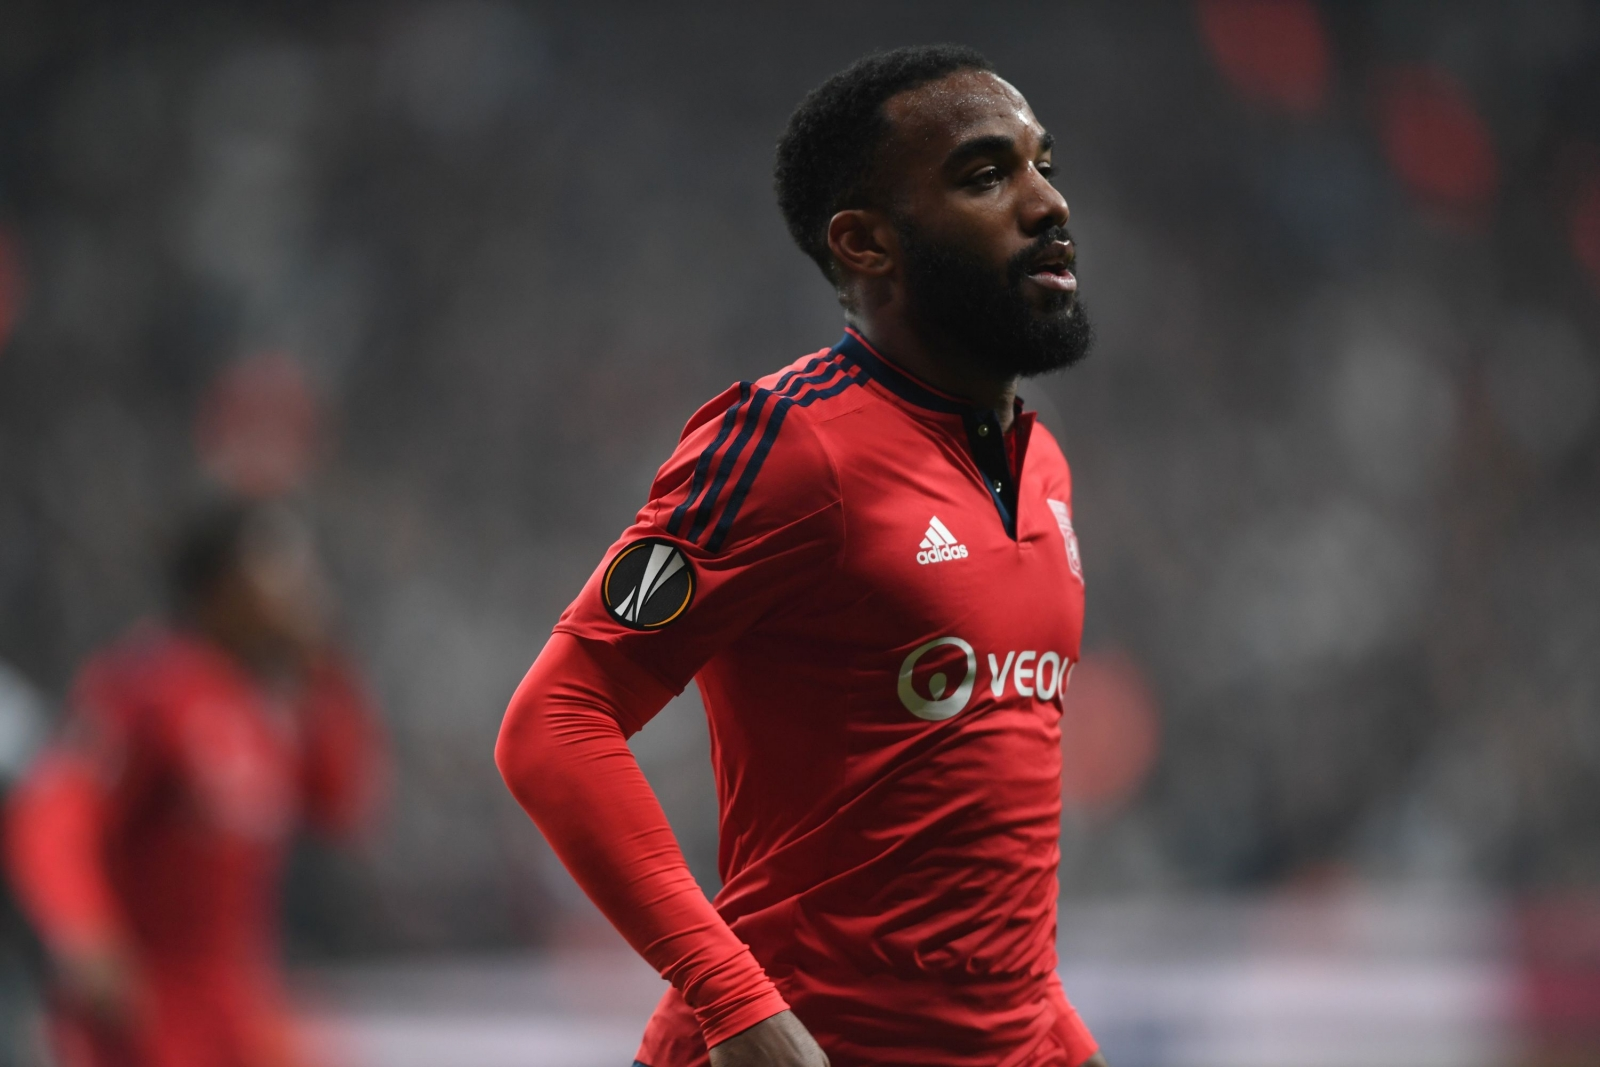 Arsenal ready to top £50million for Lacazette